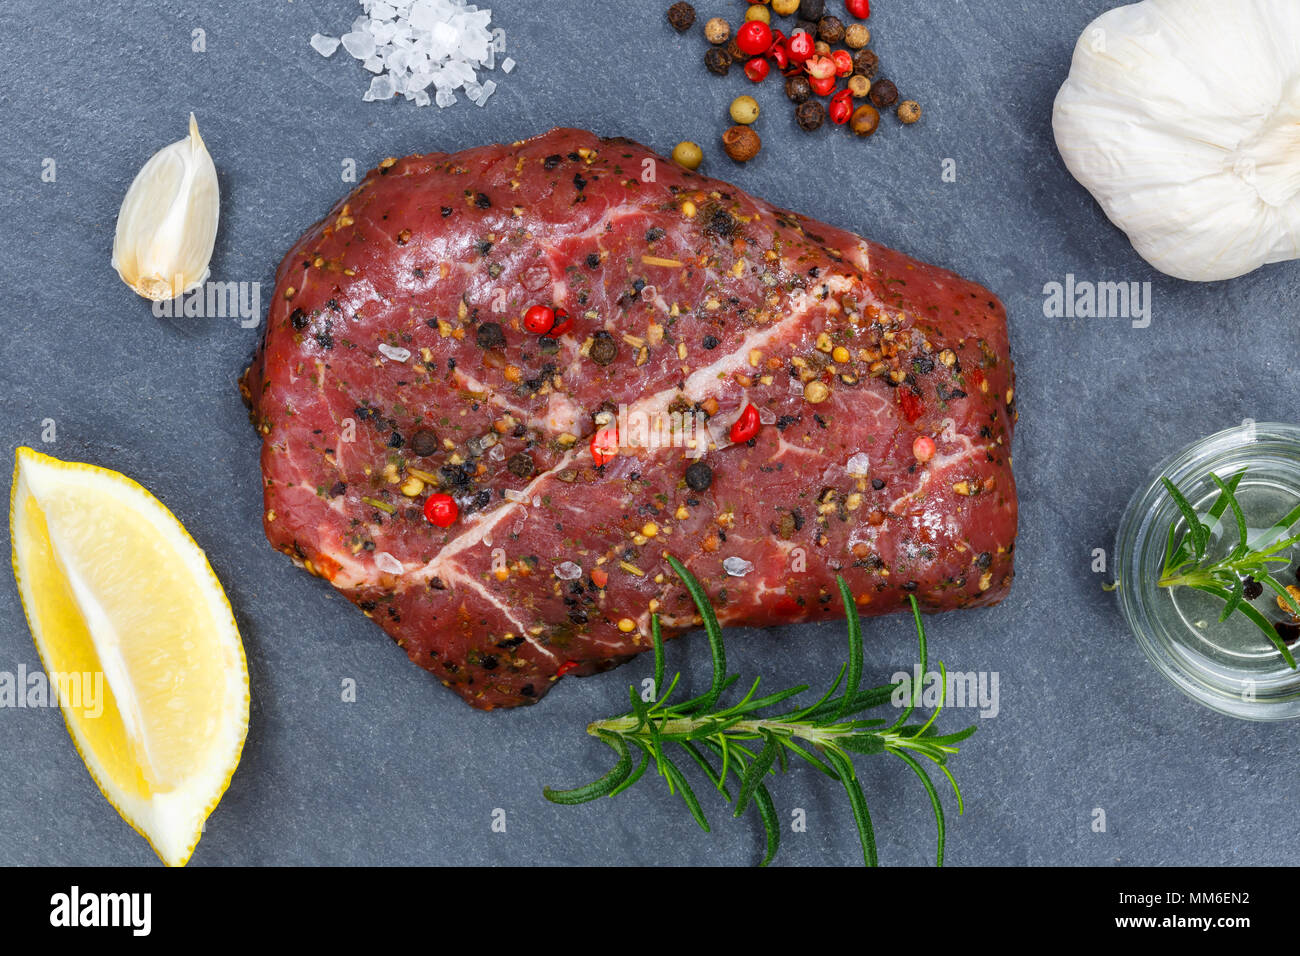 Meat raw beef steak from above slate top view - Stock Image